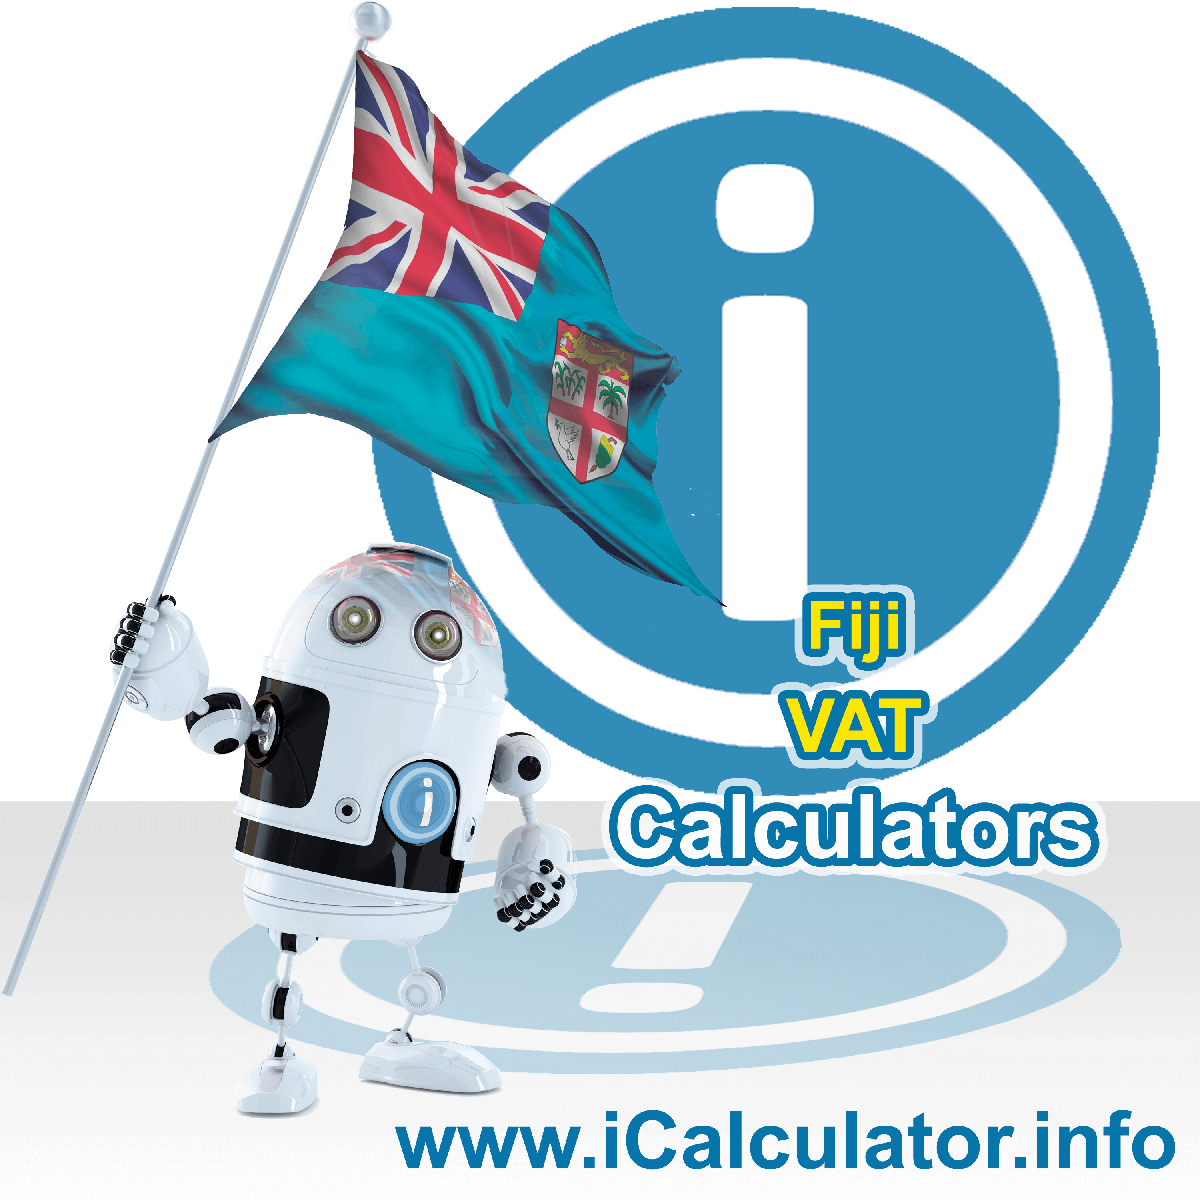 Fiji VAT Calculator. This image shows the Fiji flag and information relating to the VAT formula used for calculating Value Added Tax in Fiji using the Fiji VAT Calculator in 2020